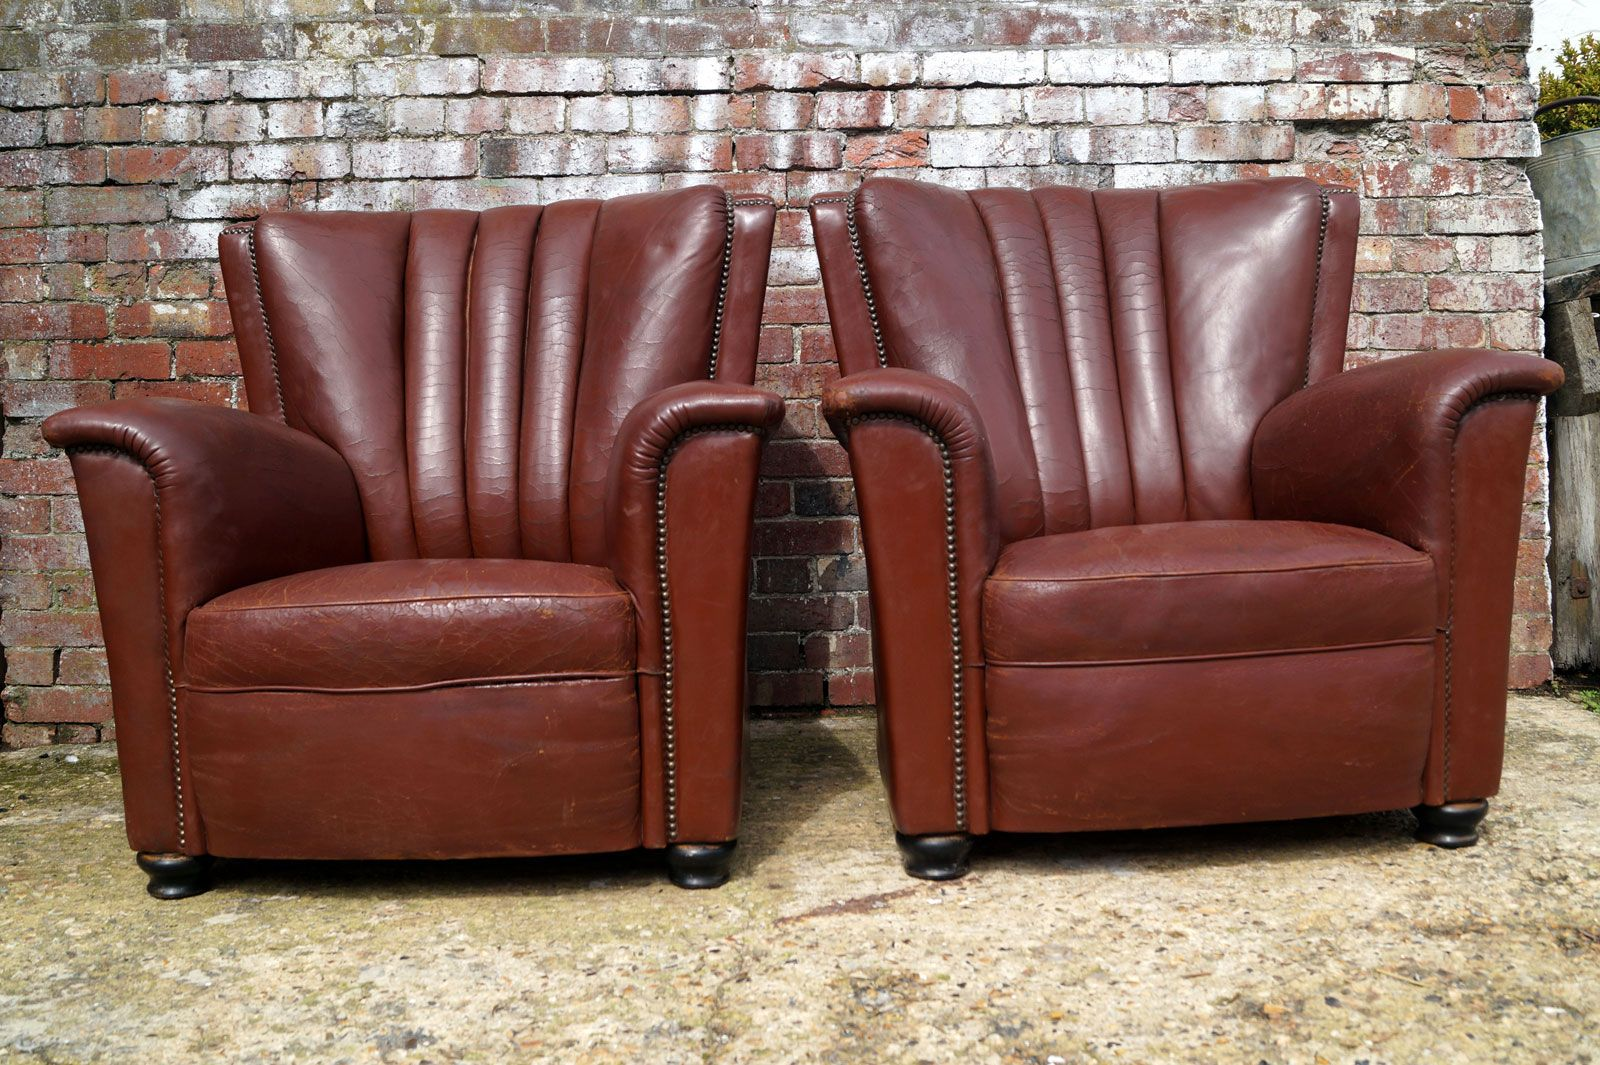 Italian Leather Chairs from Artifort, 1930s, Set of 2